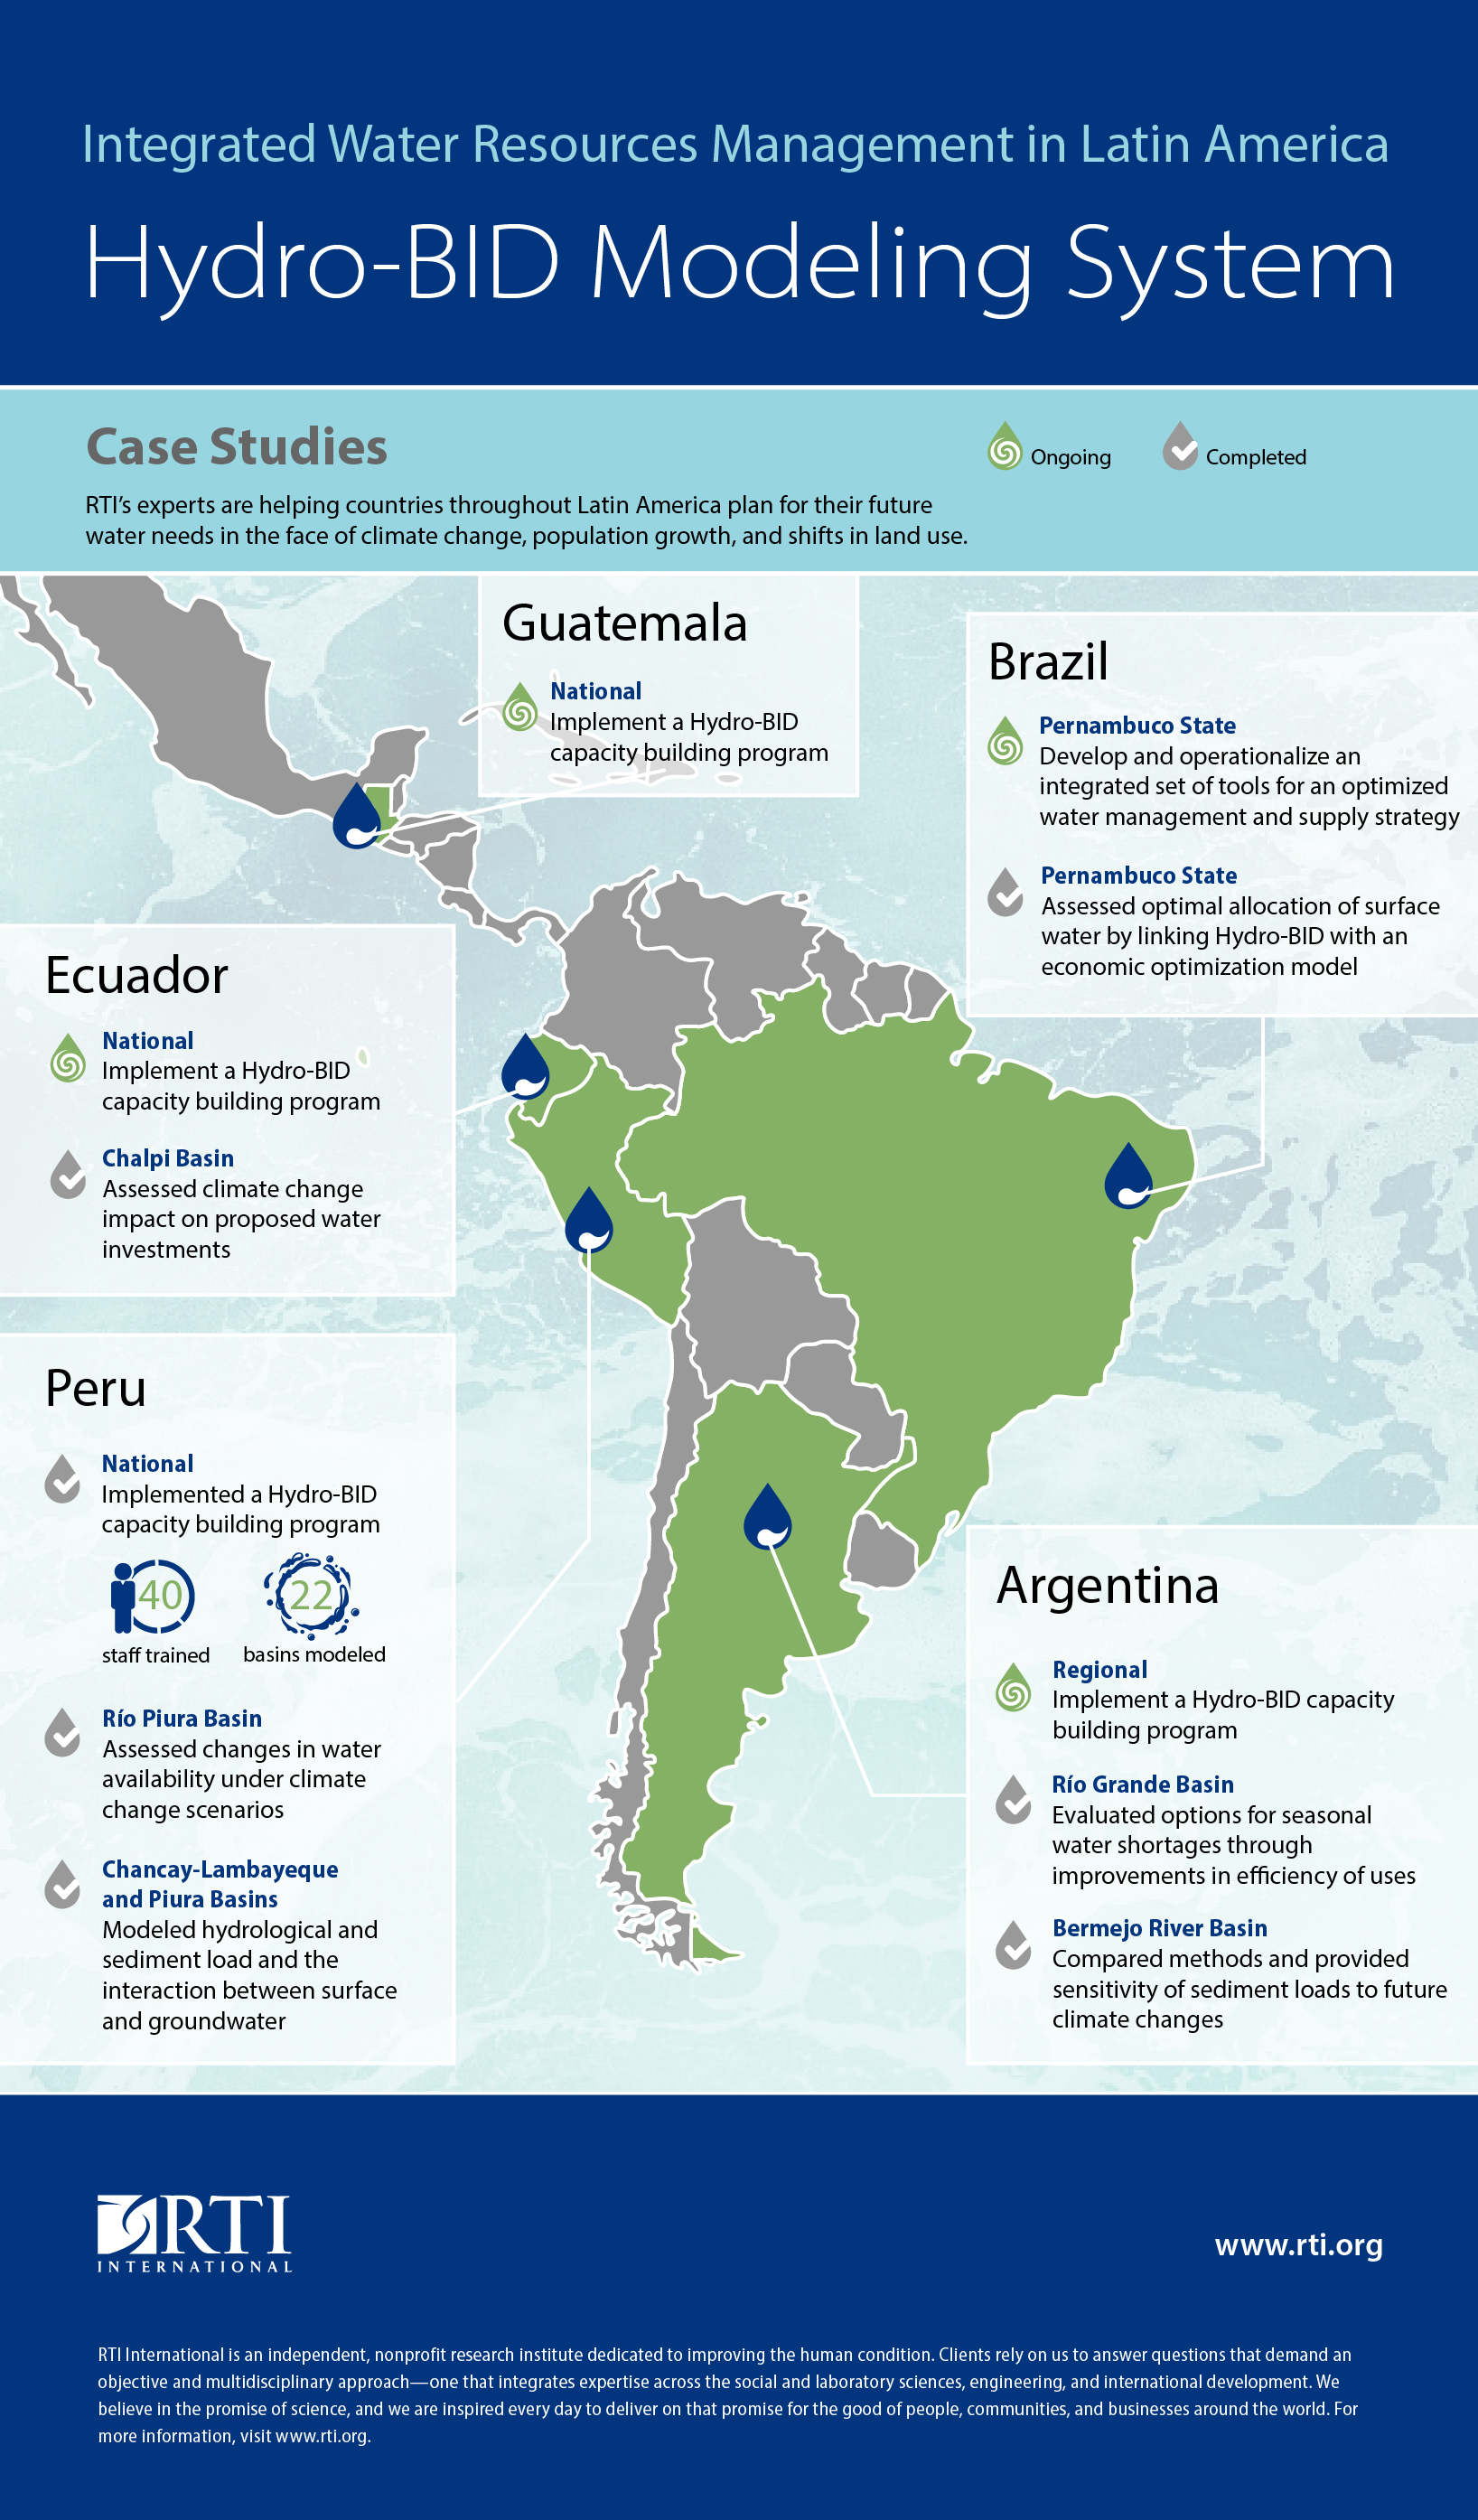 Graphic with locations and descriptions of RTI water resources management projects in Latin America.